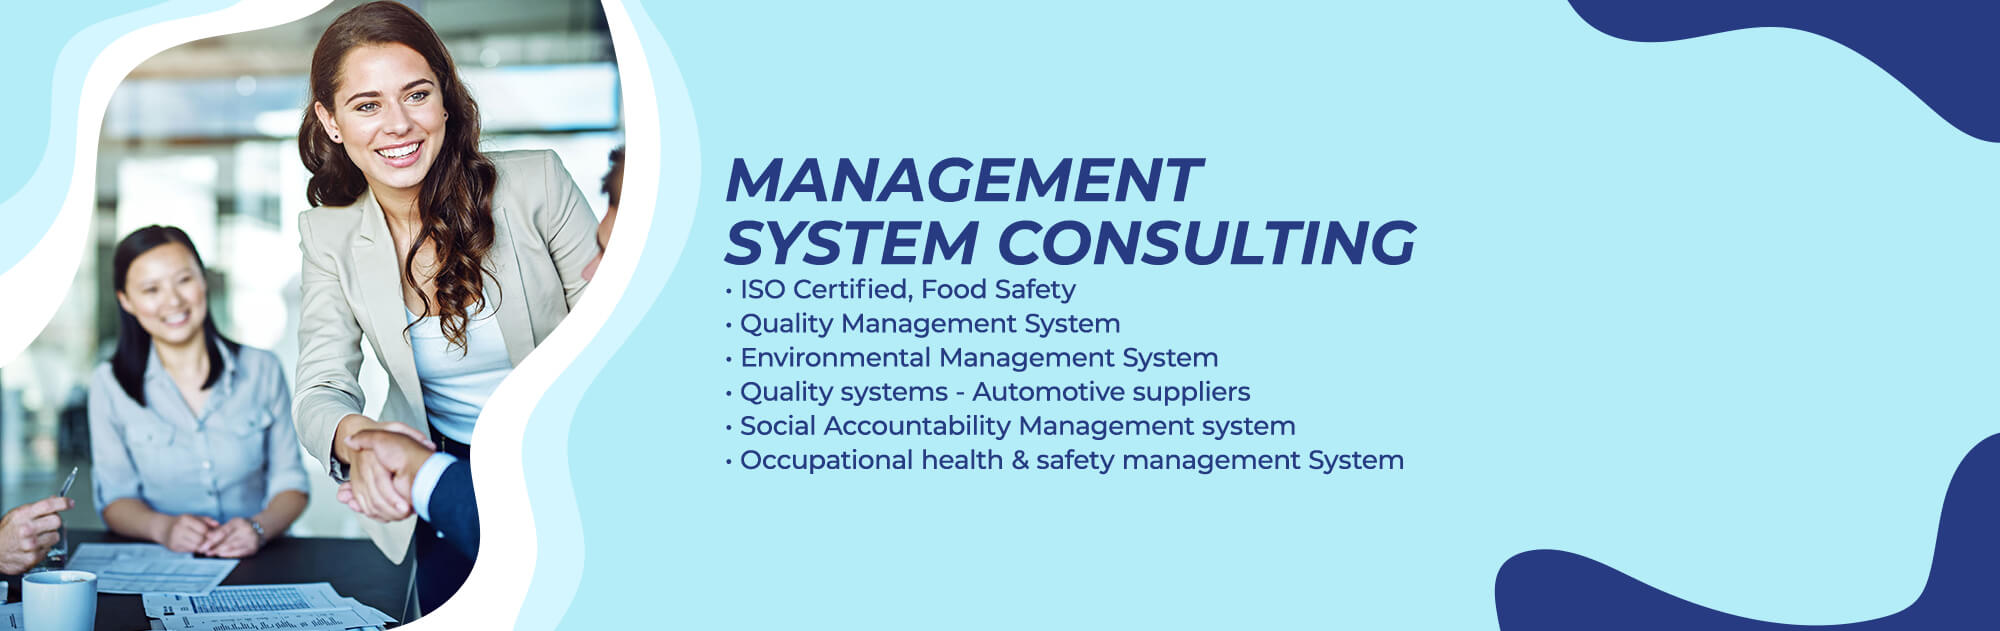 Management System Consulting - ISO Certified, Quality Management System, Environmental Management System, OHSMS, Social Accountability Management System, Quality Systems - Automotive Suppliers, Food Safety